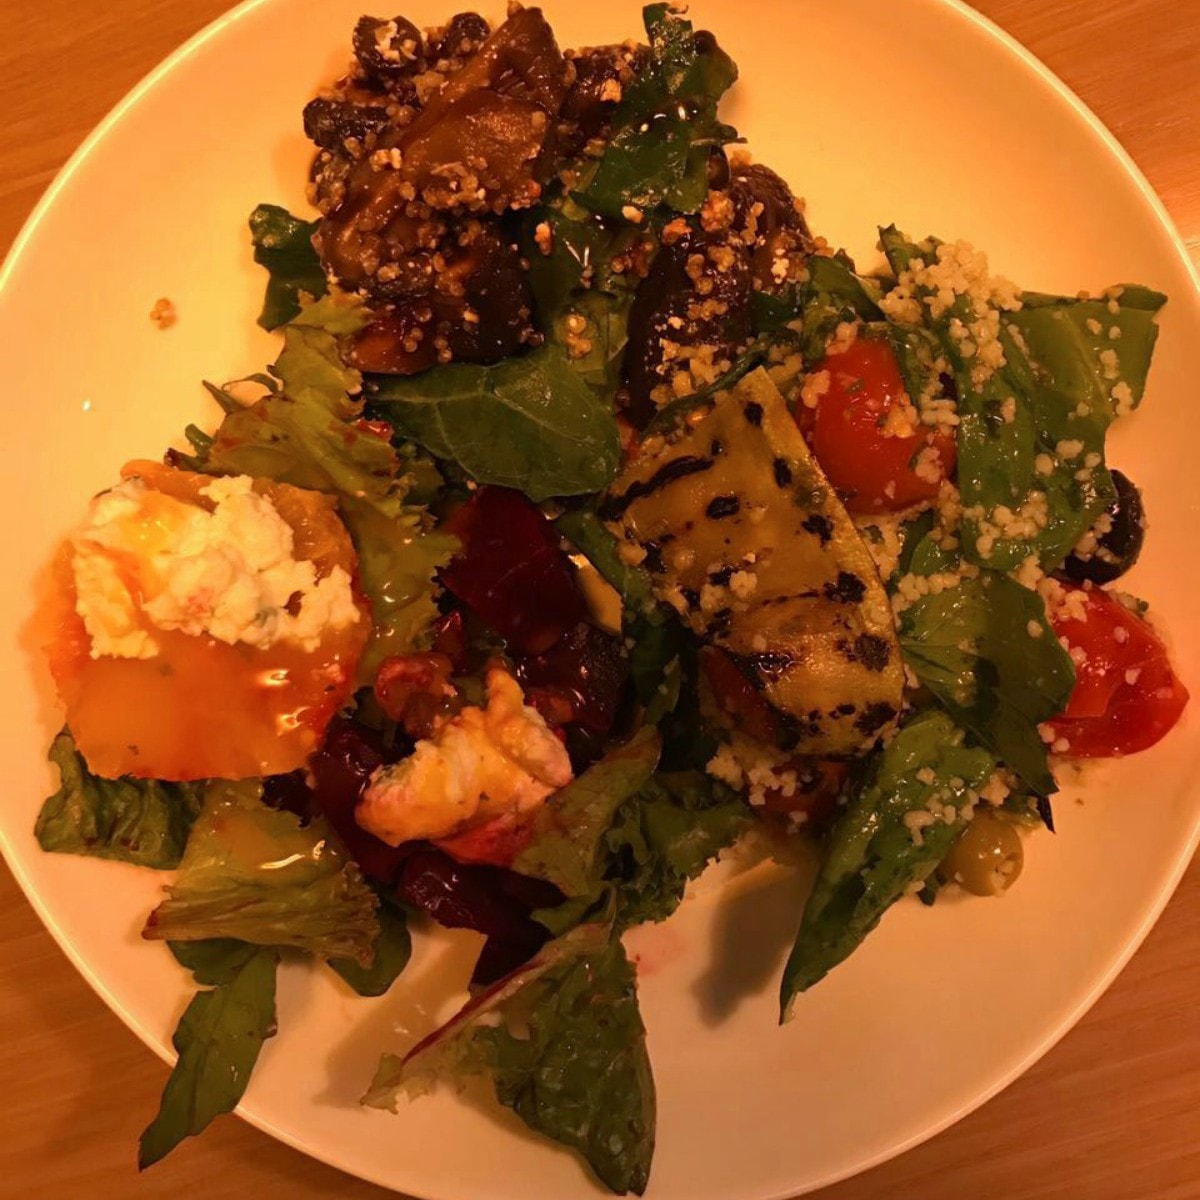 On my platter: mushroom and feta with quinoa; date and orange salad; and citrus beet